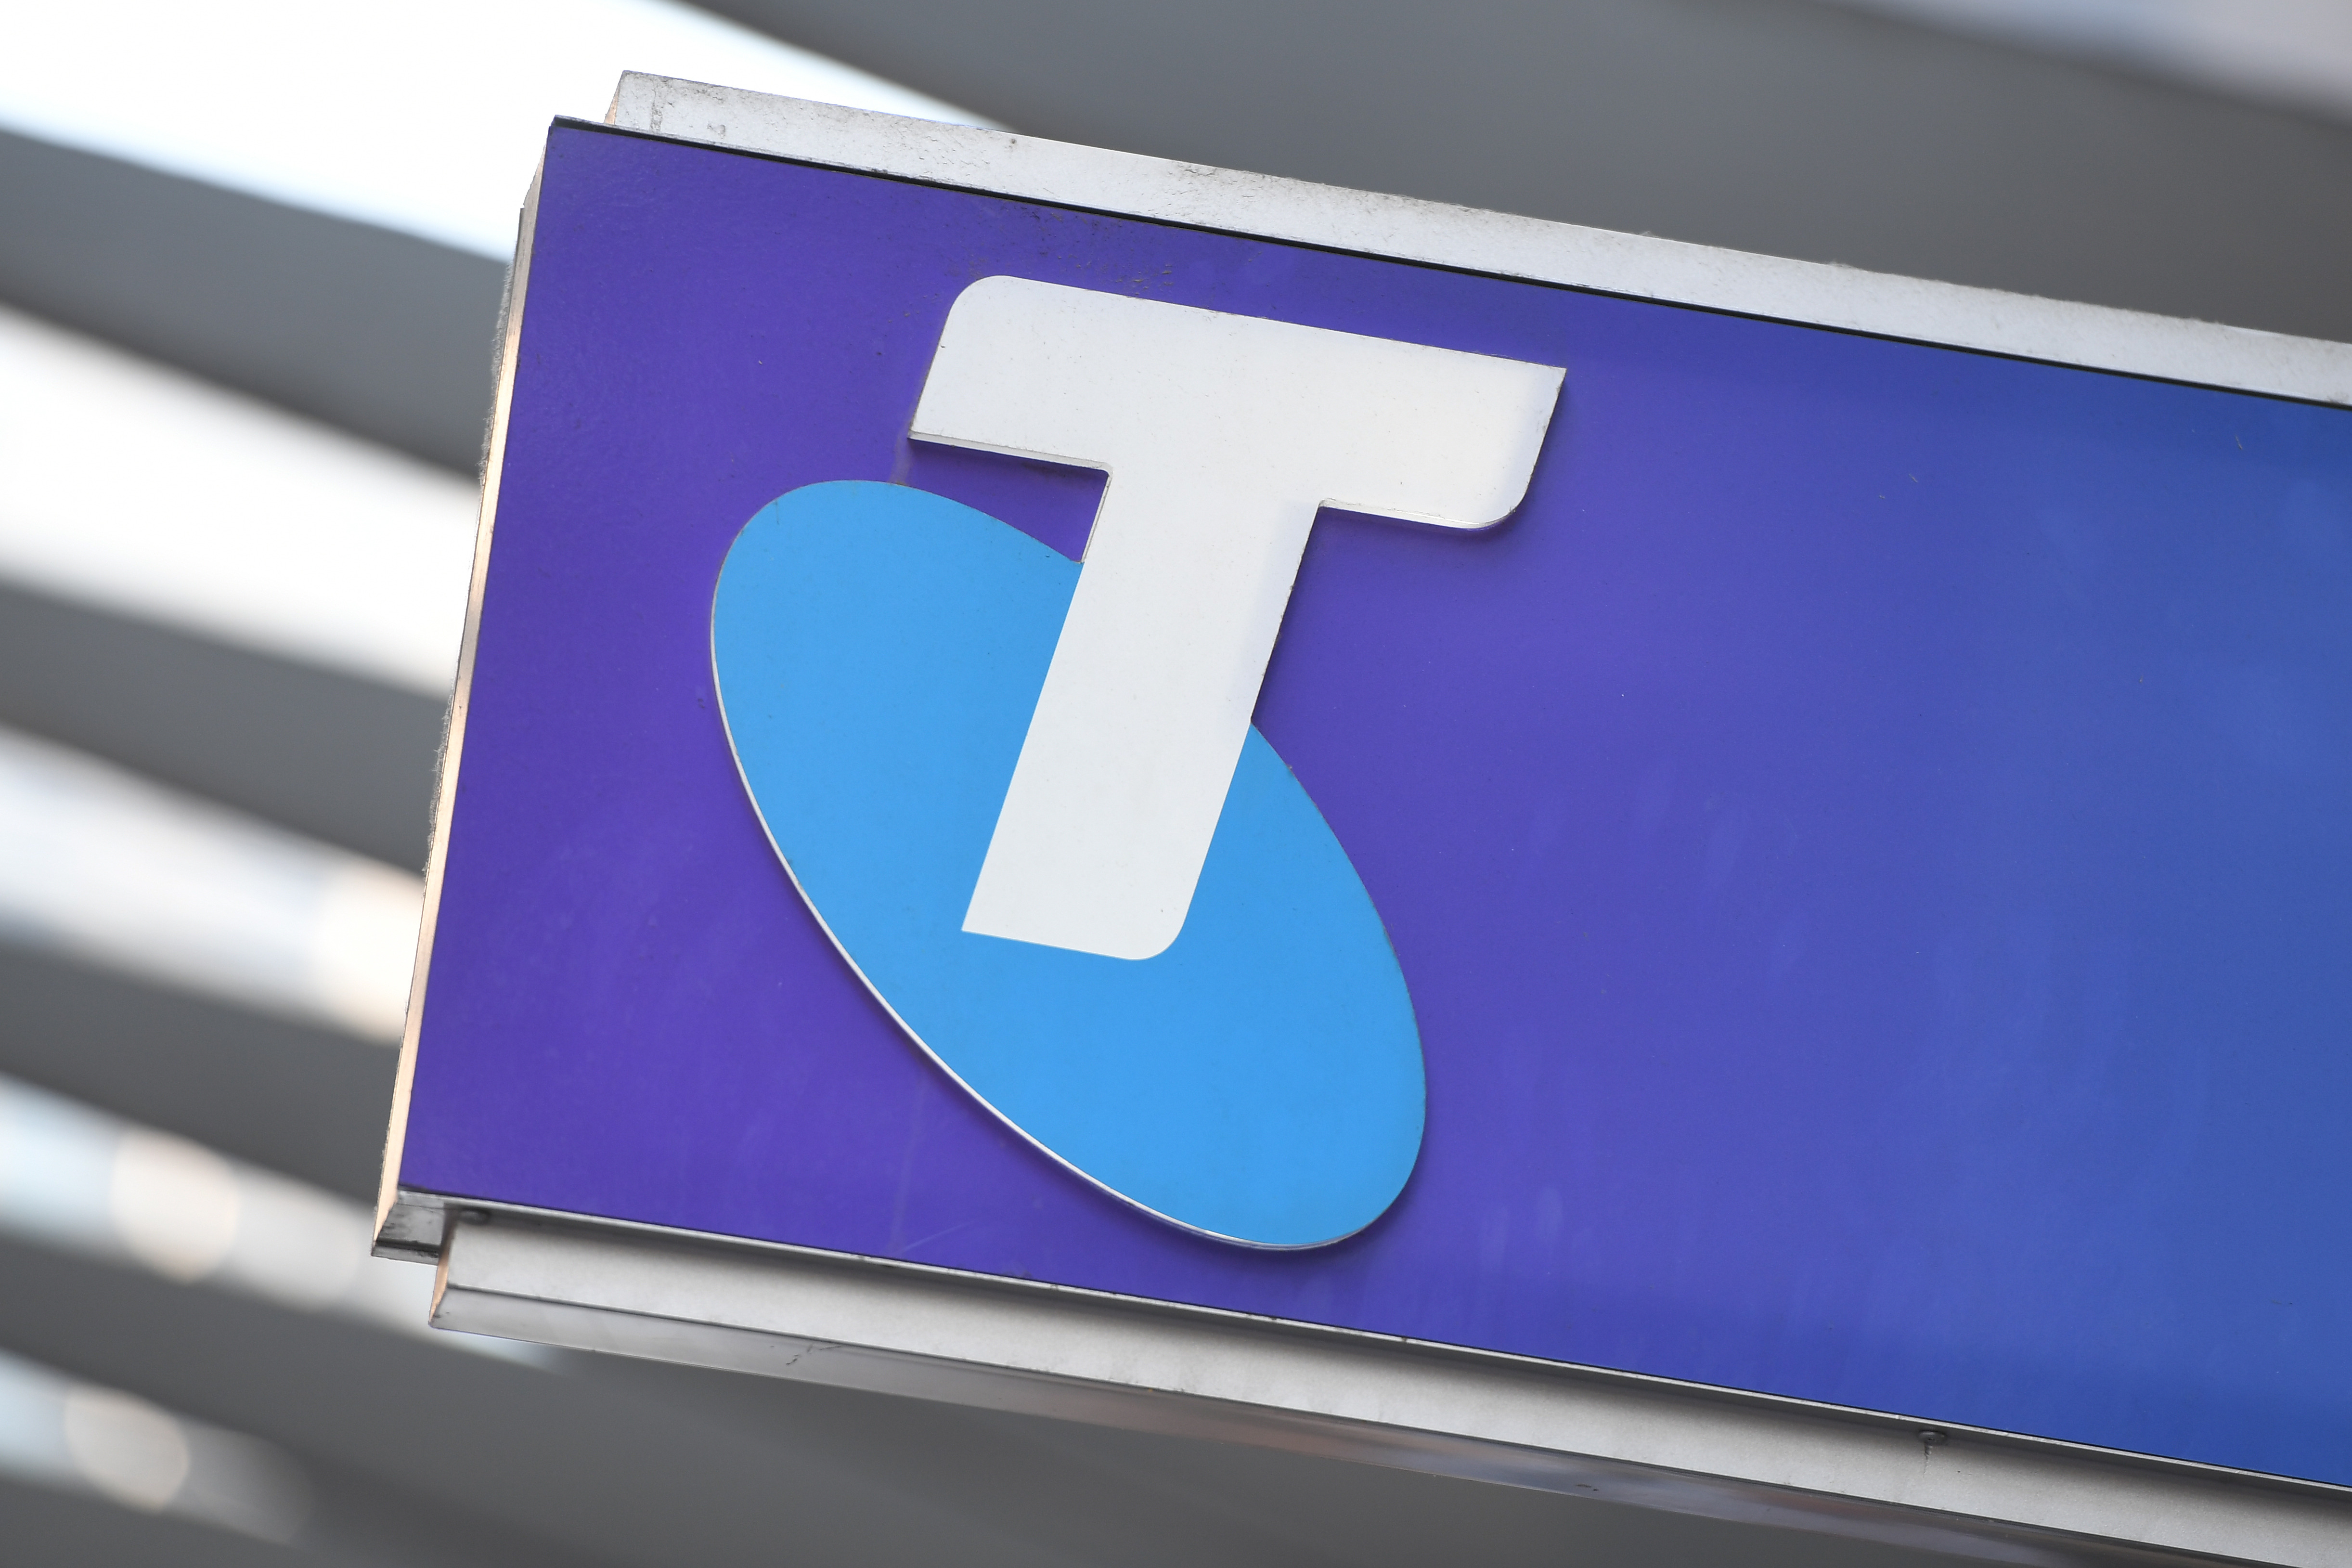 Telstra scam: Man has over $10,000 in fraudulent charges